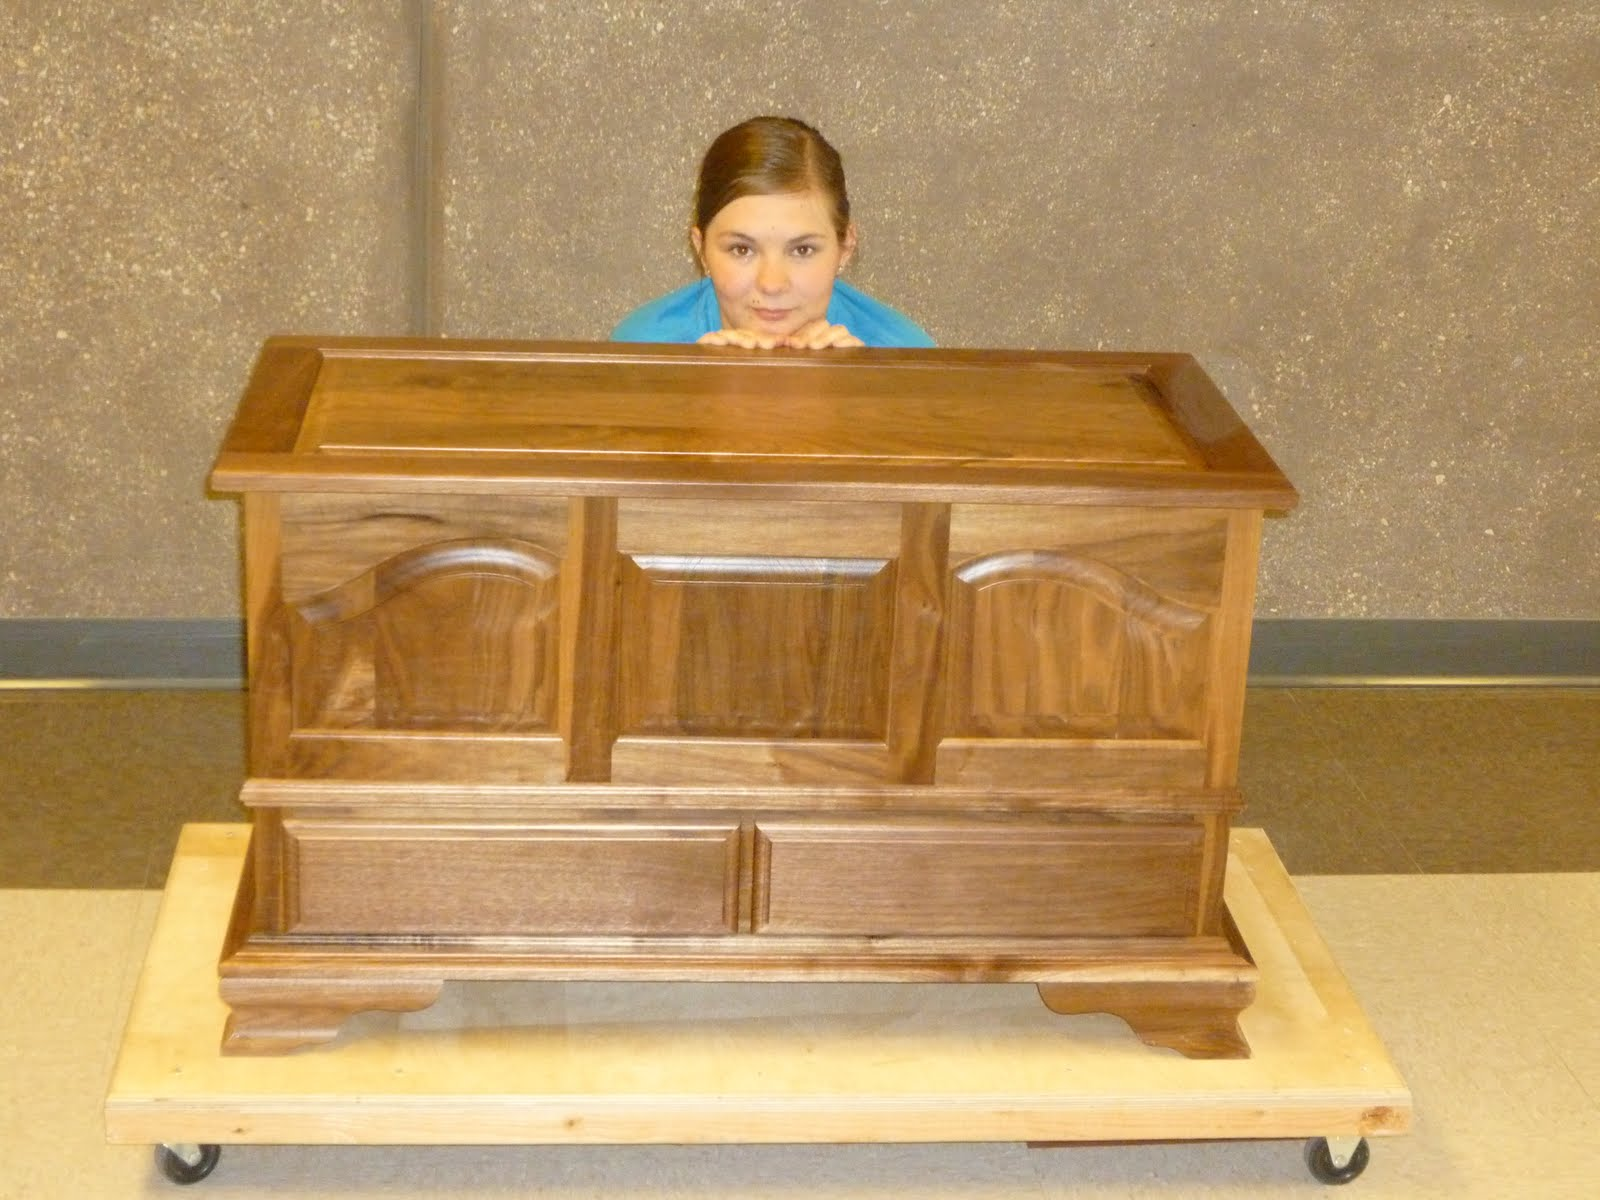 Woodwork Woodworking Projects For Middle School Students